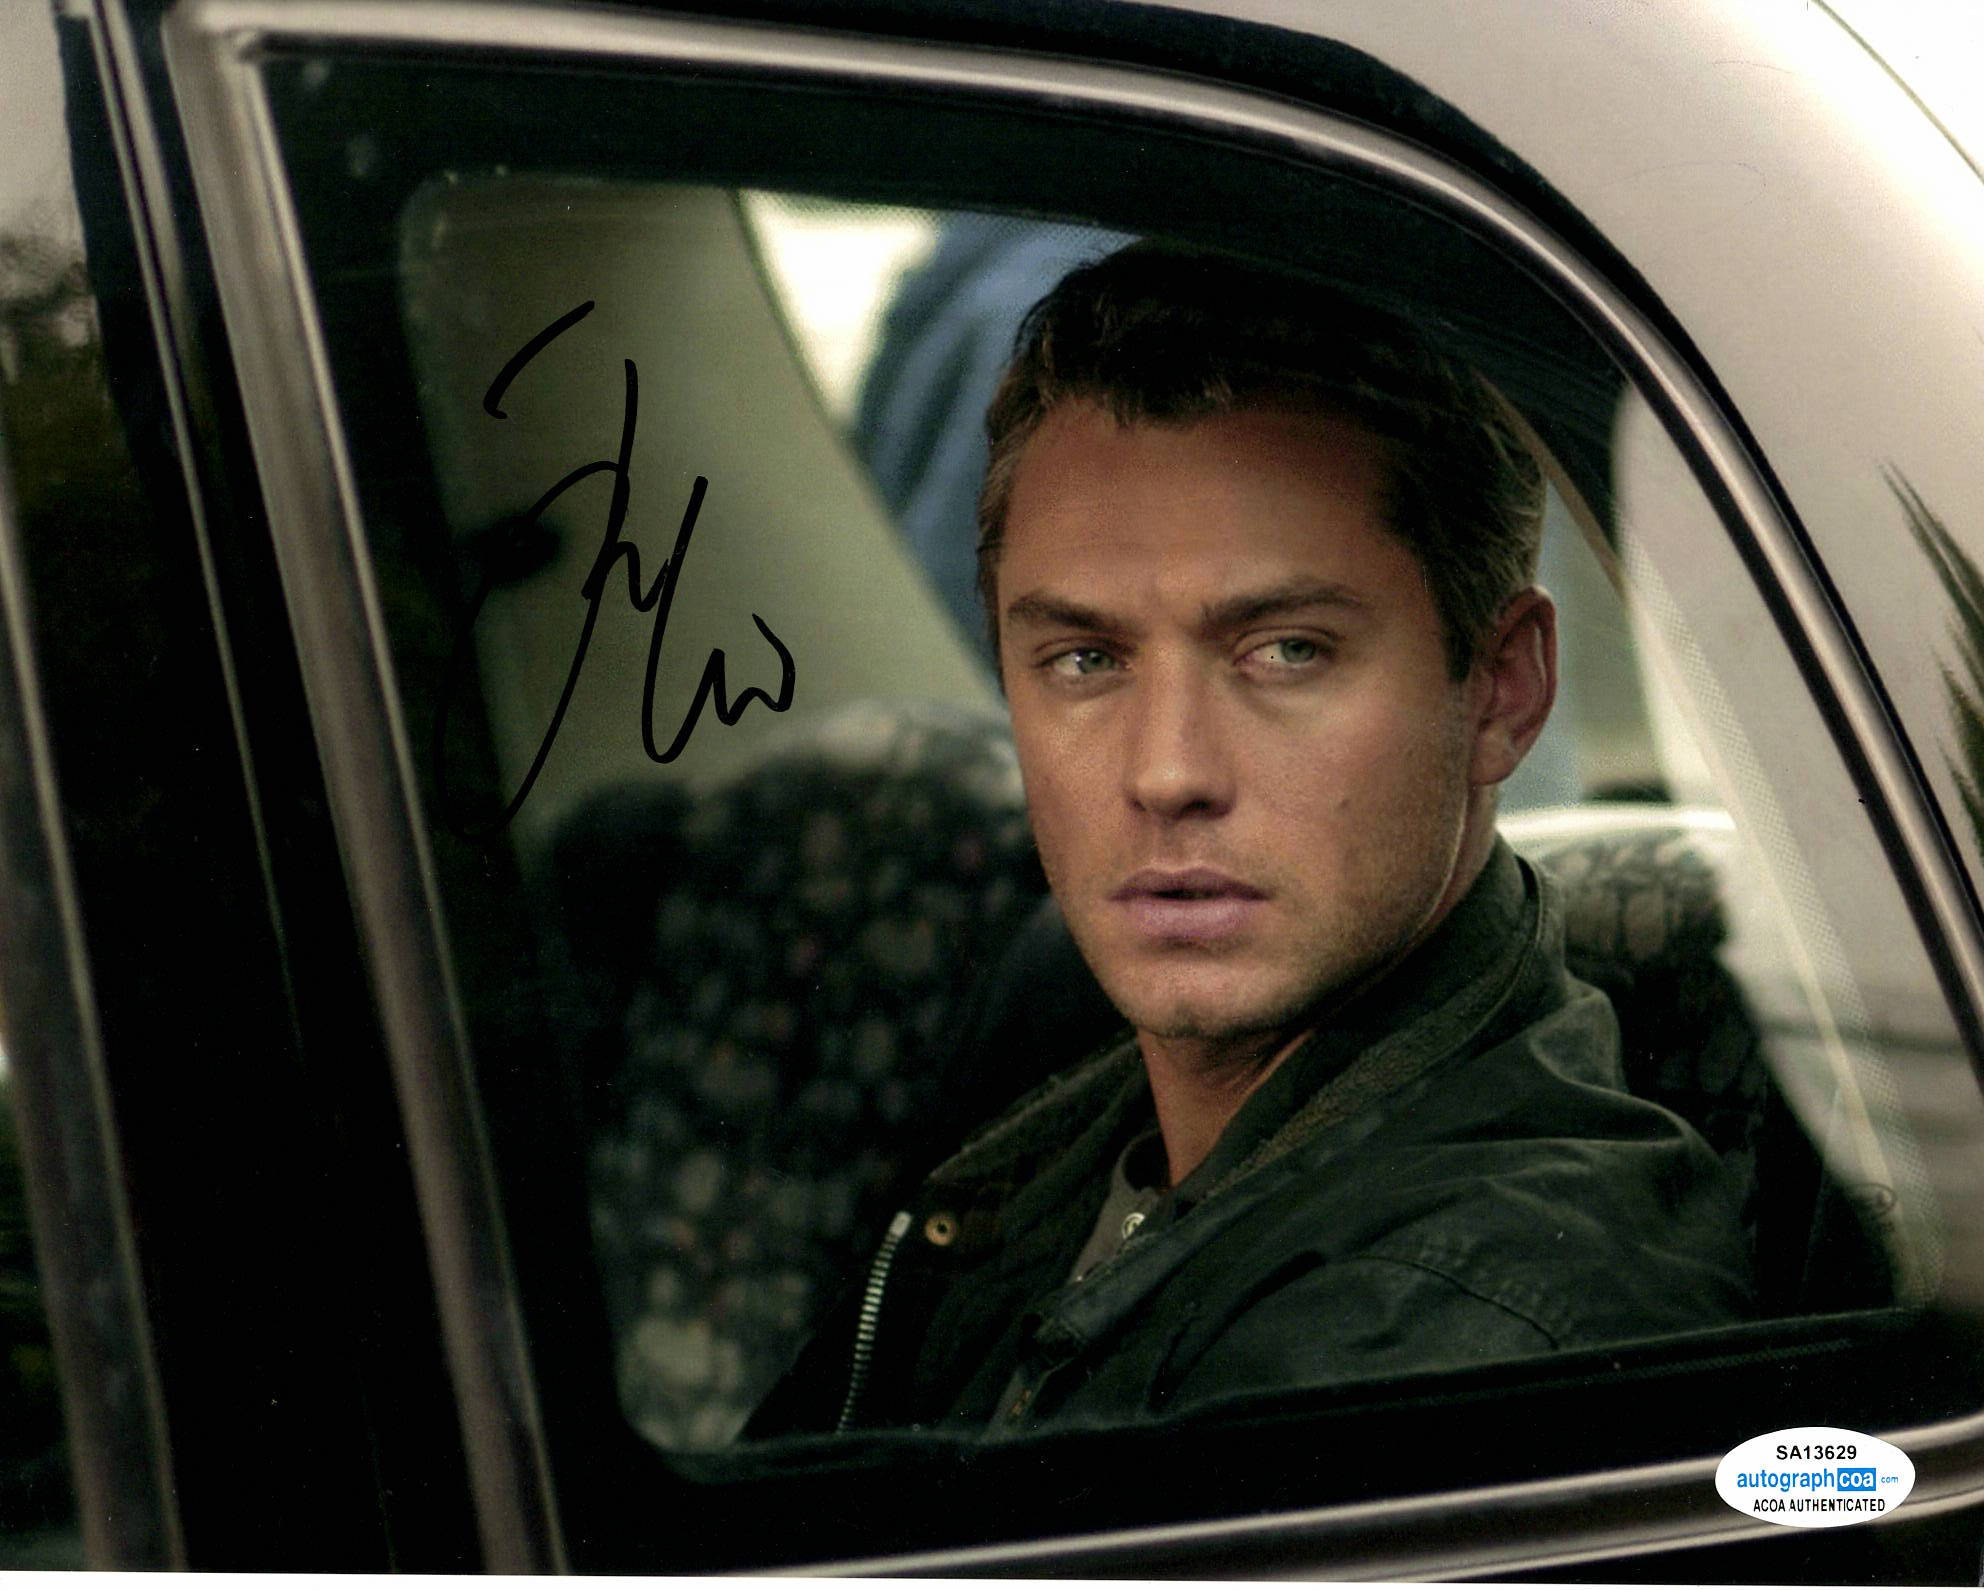 Jude Law Sherlock Signed Autograph 8x10 Photo #2 - Outlaw Hobbies Authentic Autographs